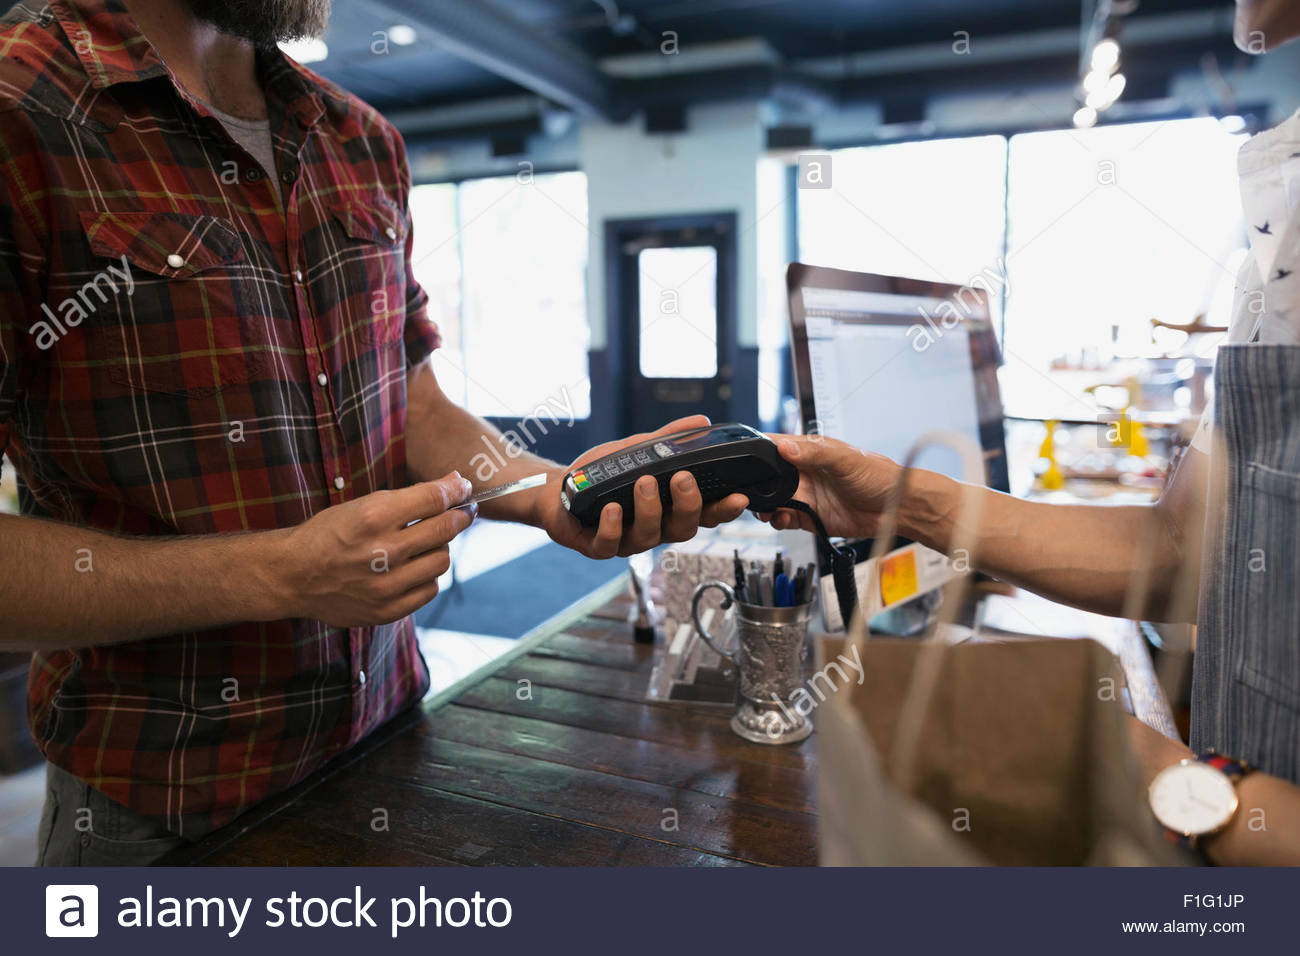 Man paying with credit card reader in shop - Stock Image